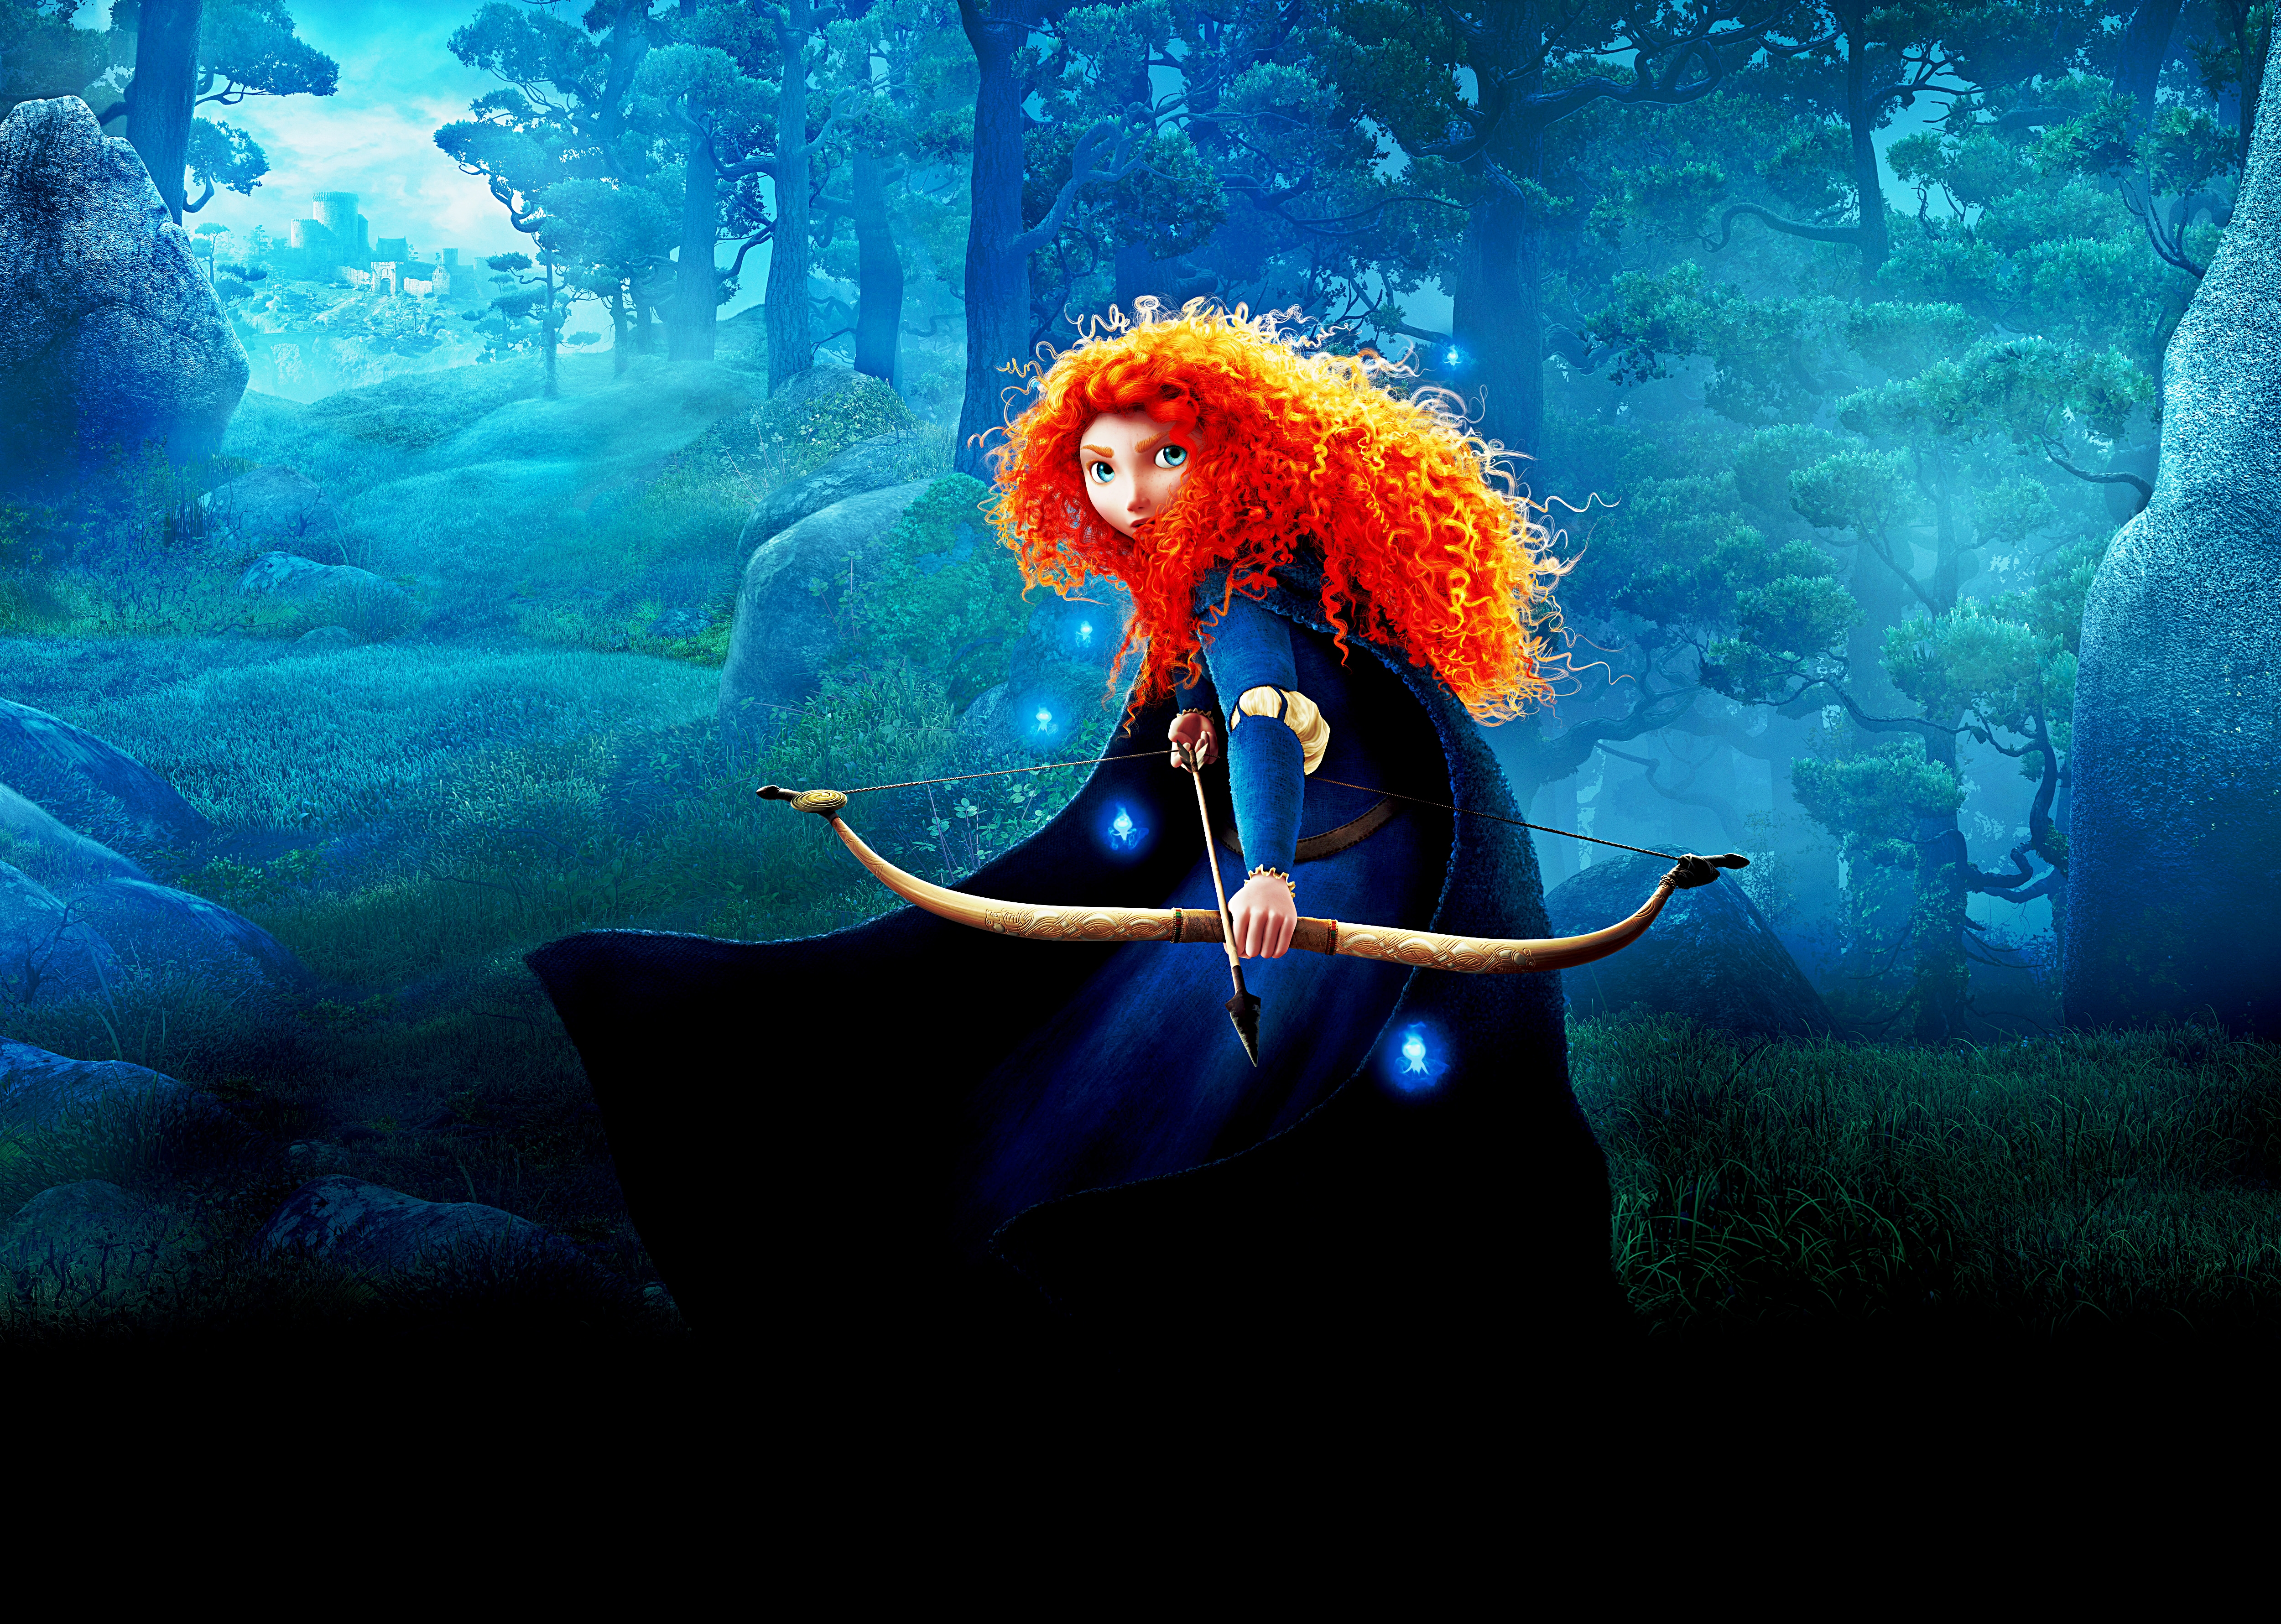 disney pixar brave Brave is pixar's 13th movie it's about a flame-haired princess named merida (voiced by kelly macdonald) who doesn't want to get married she'd rather ride her horse, drink from waterfalls and wield her bow and arrow, like a medieval katniss.